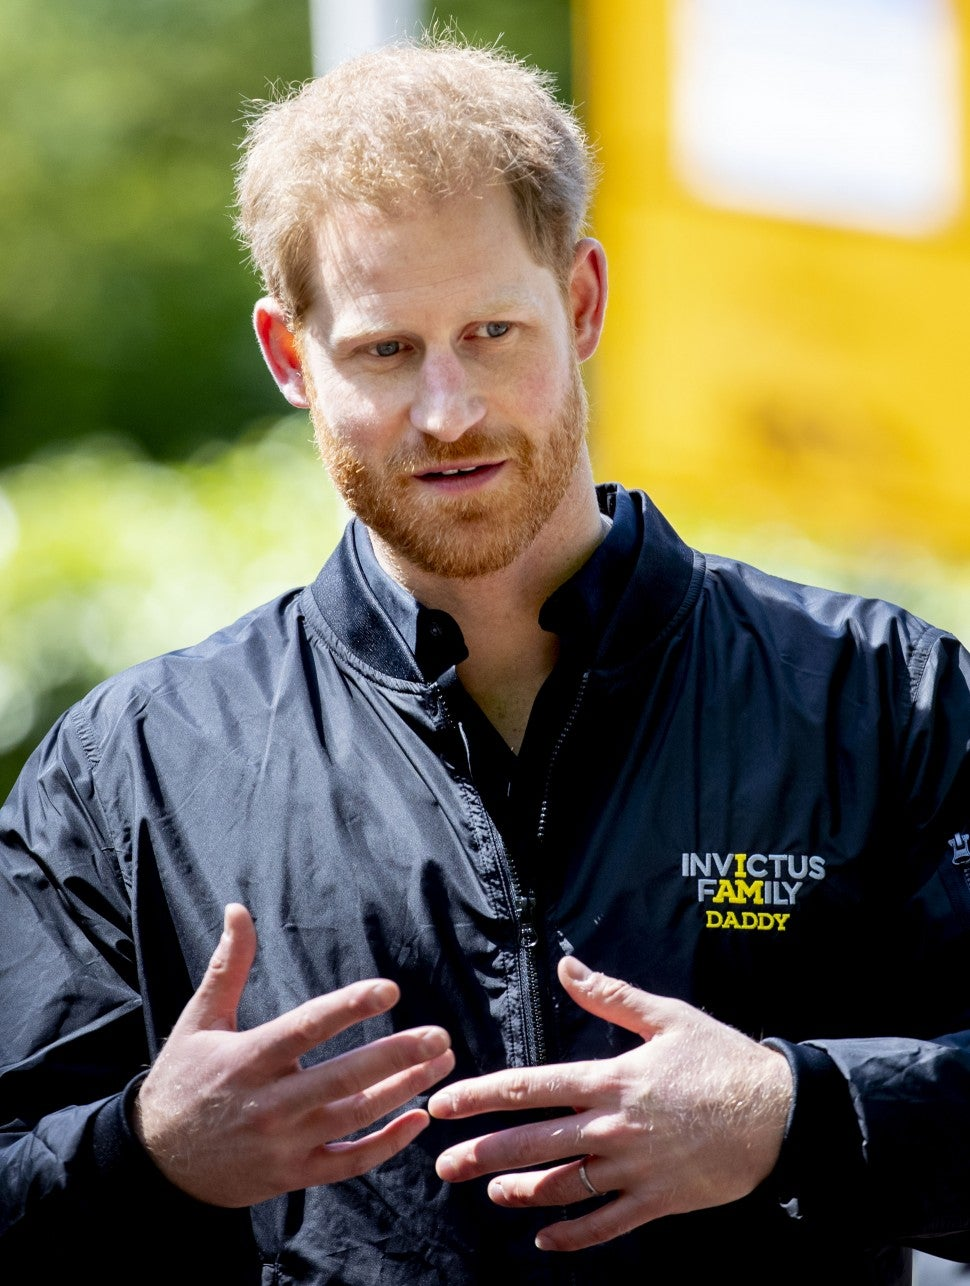 Prince Harry, Duke of Sussex during the launch of the Invictus Games on May 9, 2019 in The Hague, Netherlands.